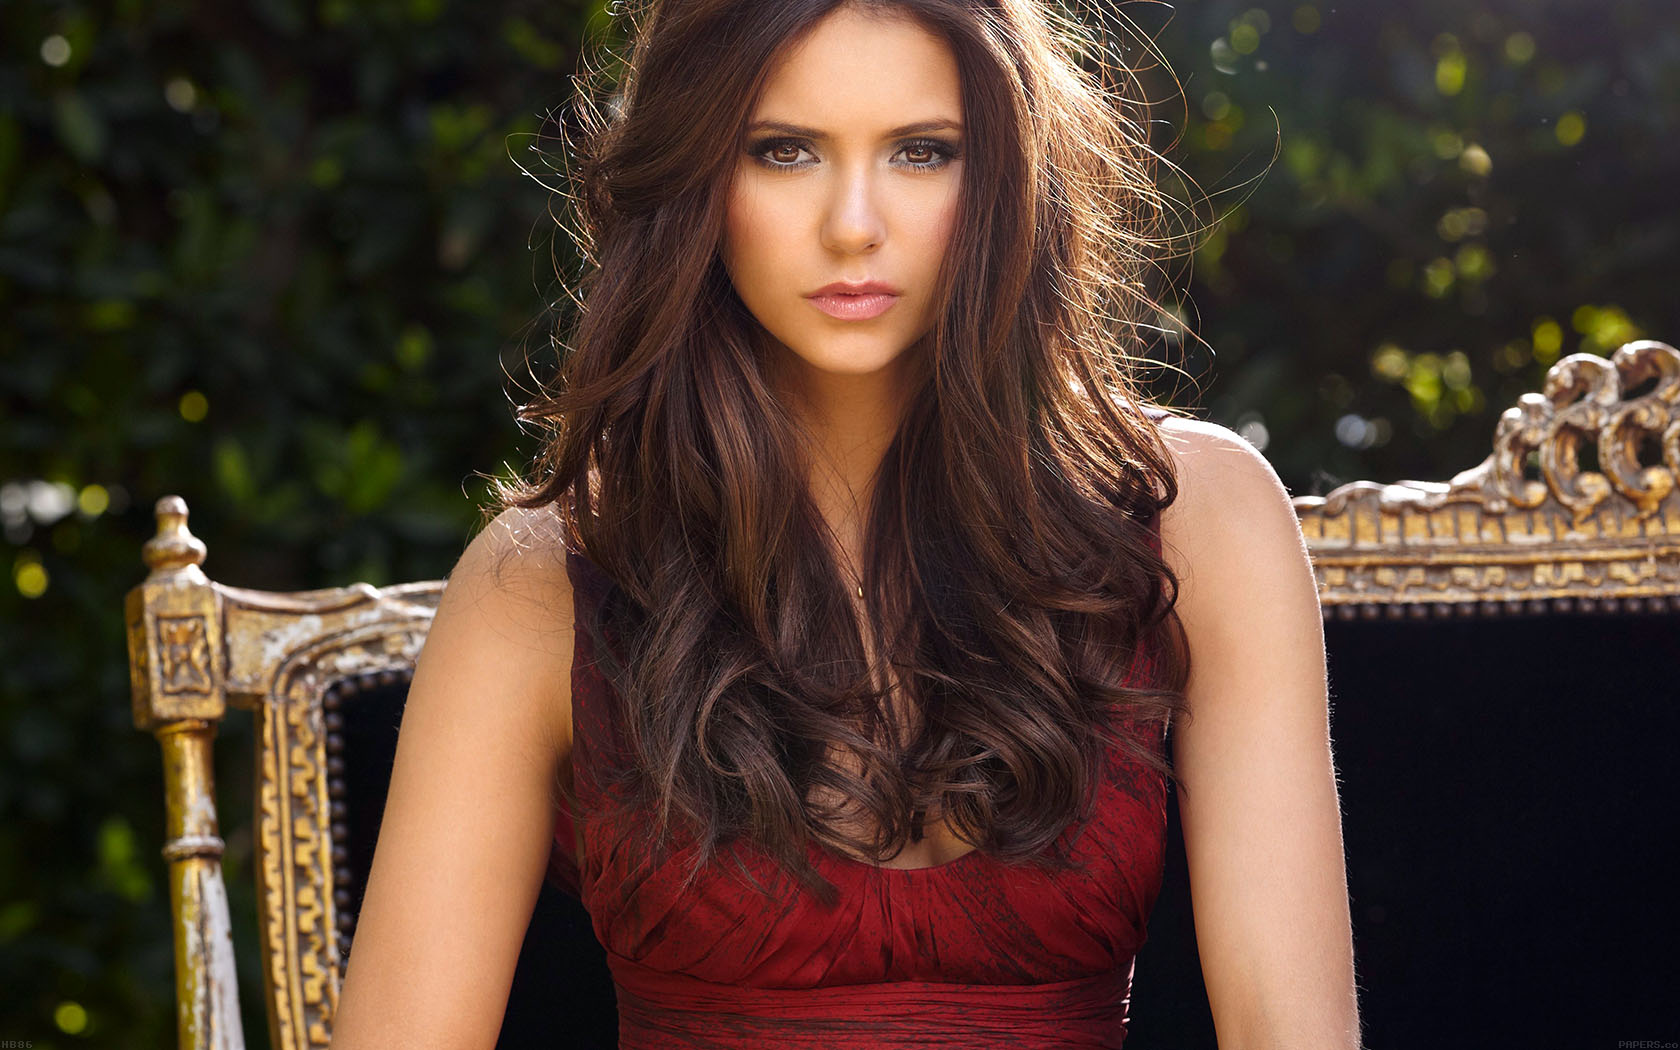 hb86-nina-dobrev-actress-cute